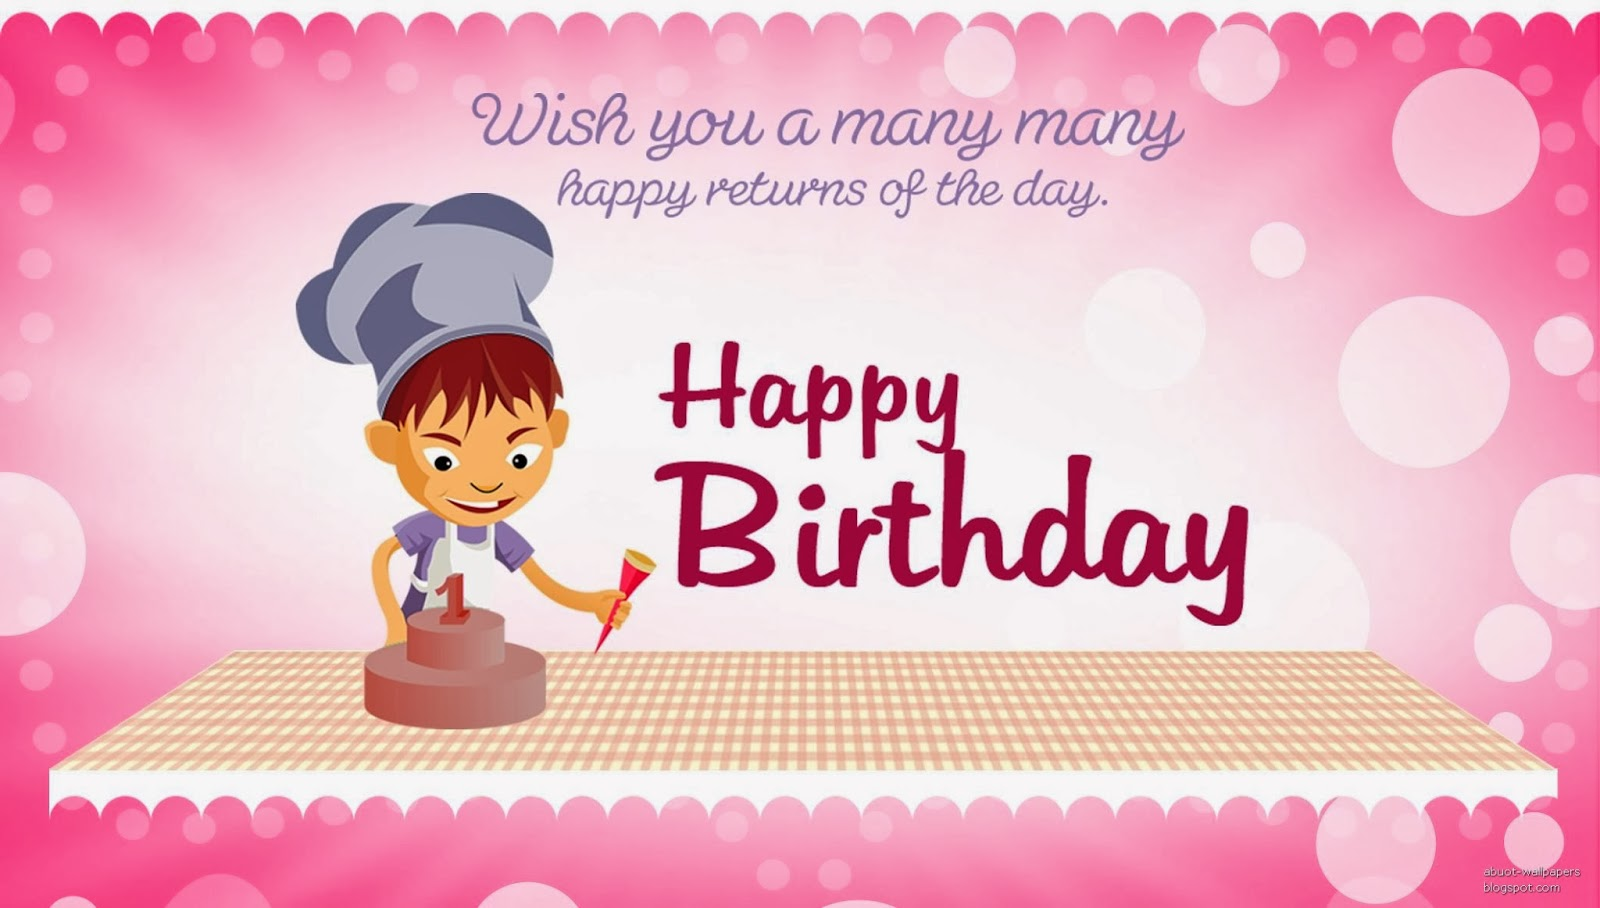 My Birthday Wishes Greeting Cards and Messages